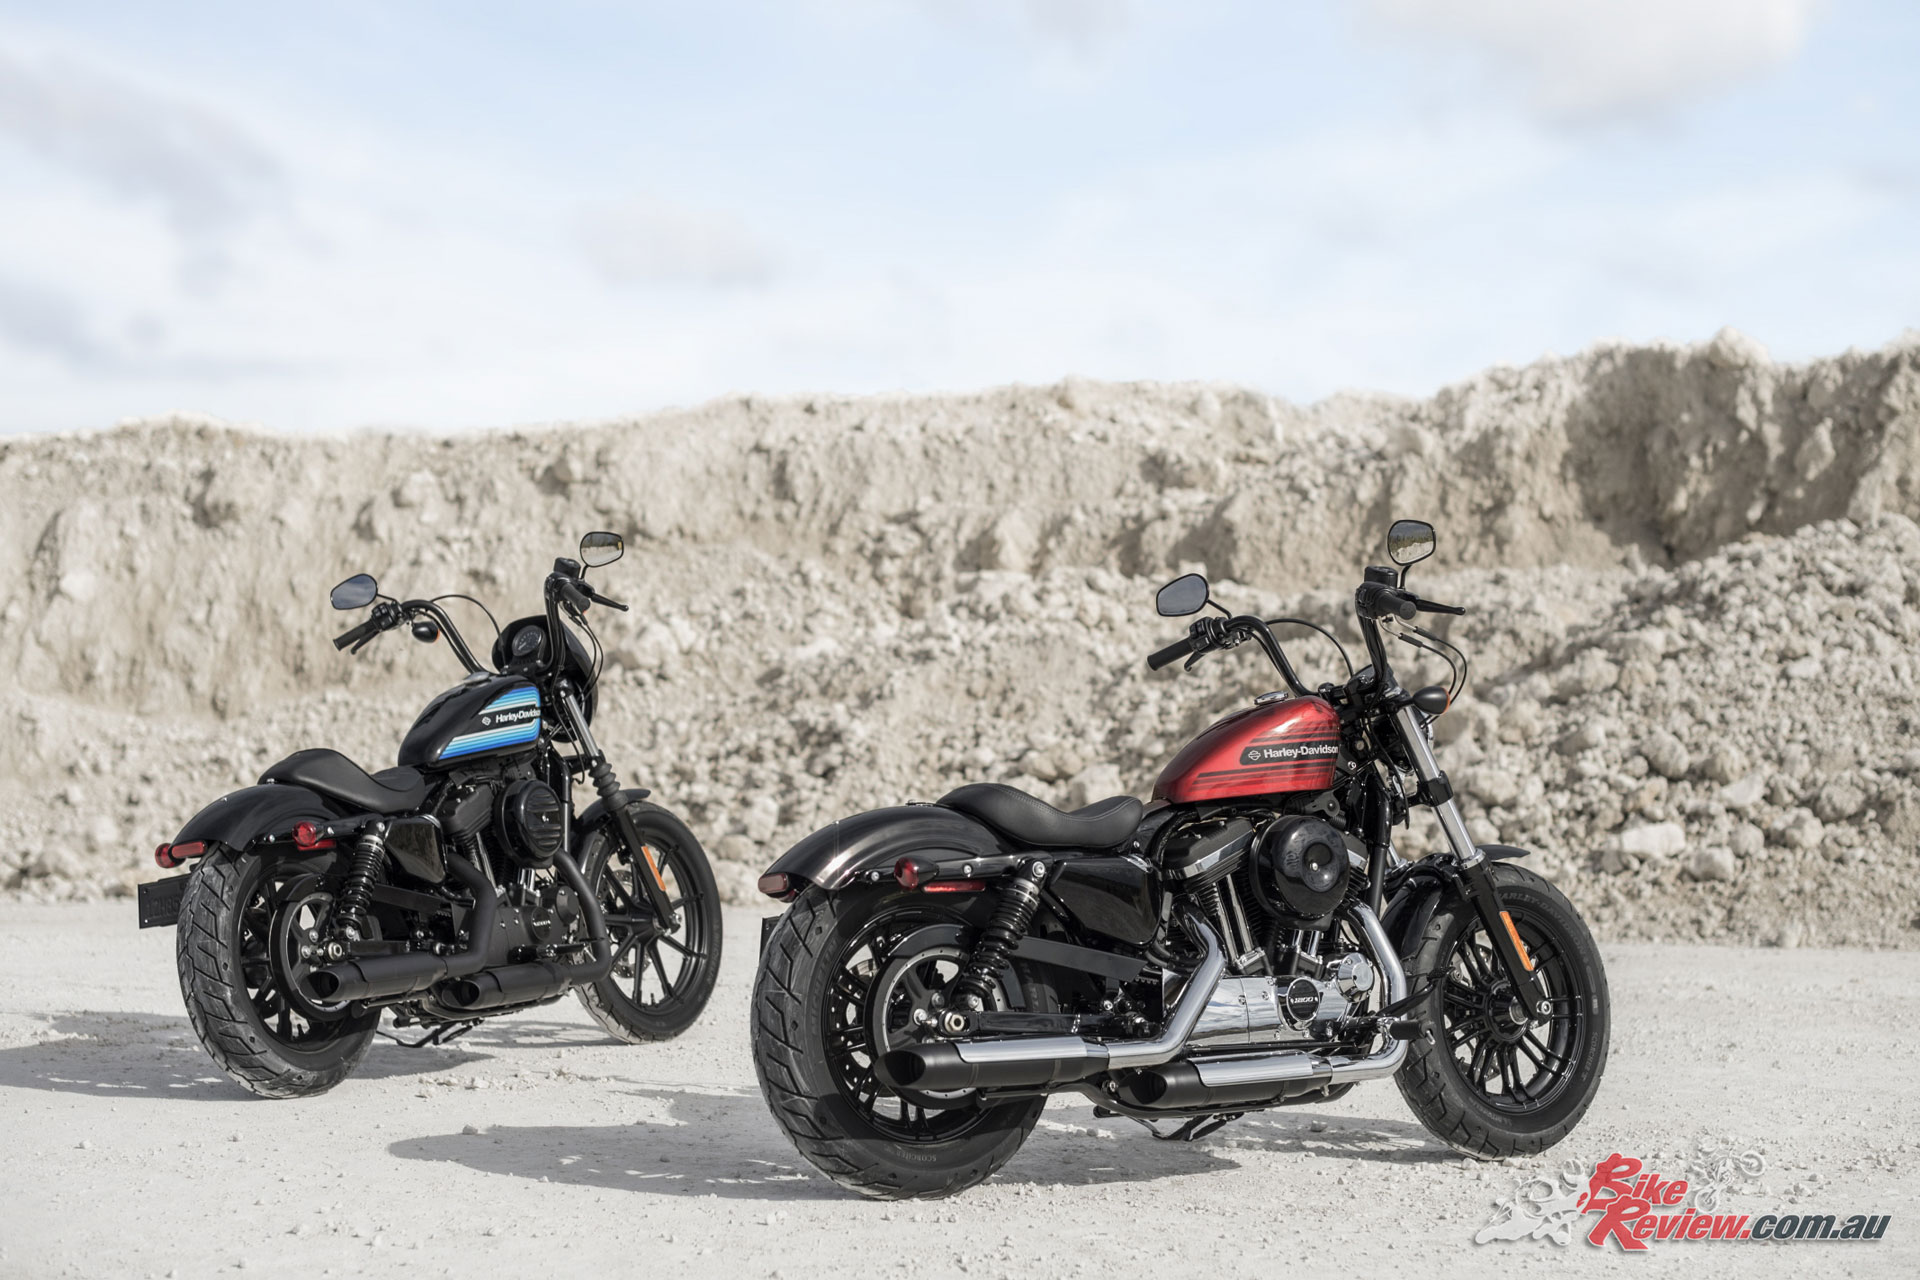 Harley-Davidson introduce the 2018 Iron 1200 and Forty-Eight Special